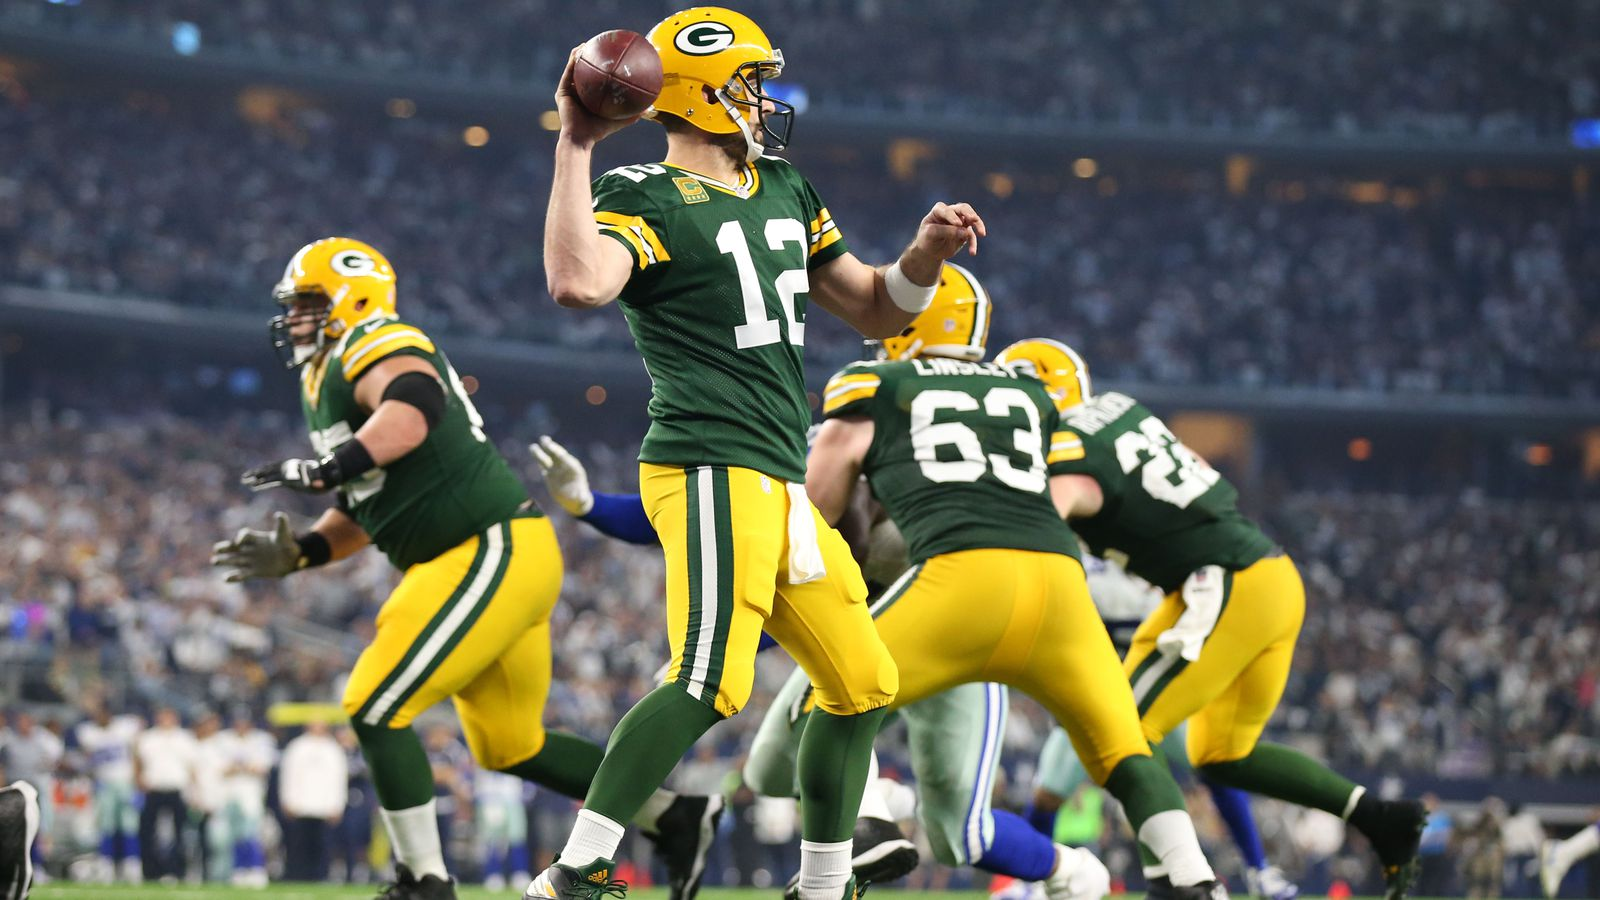 NFL scores and more: What happened in the Divisional round this weekend